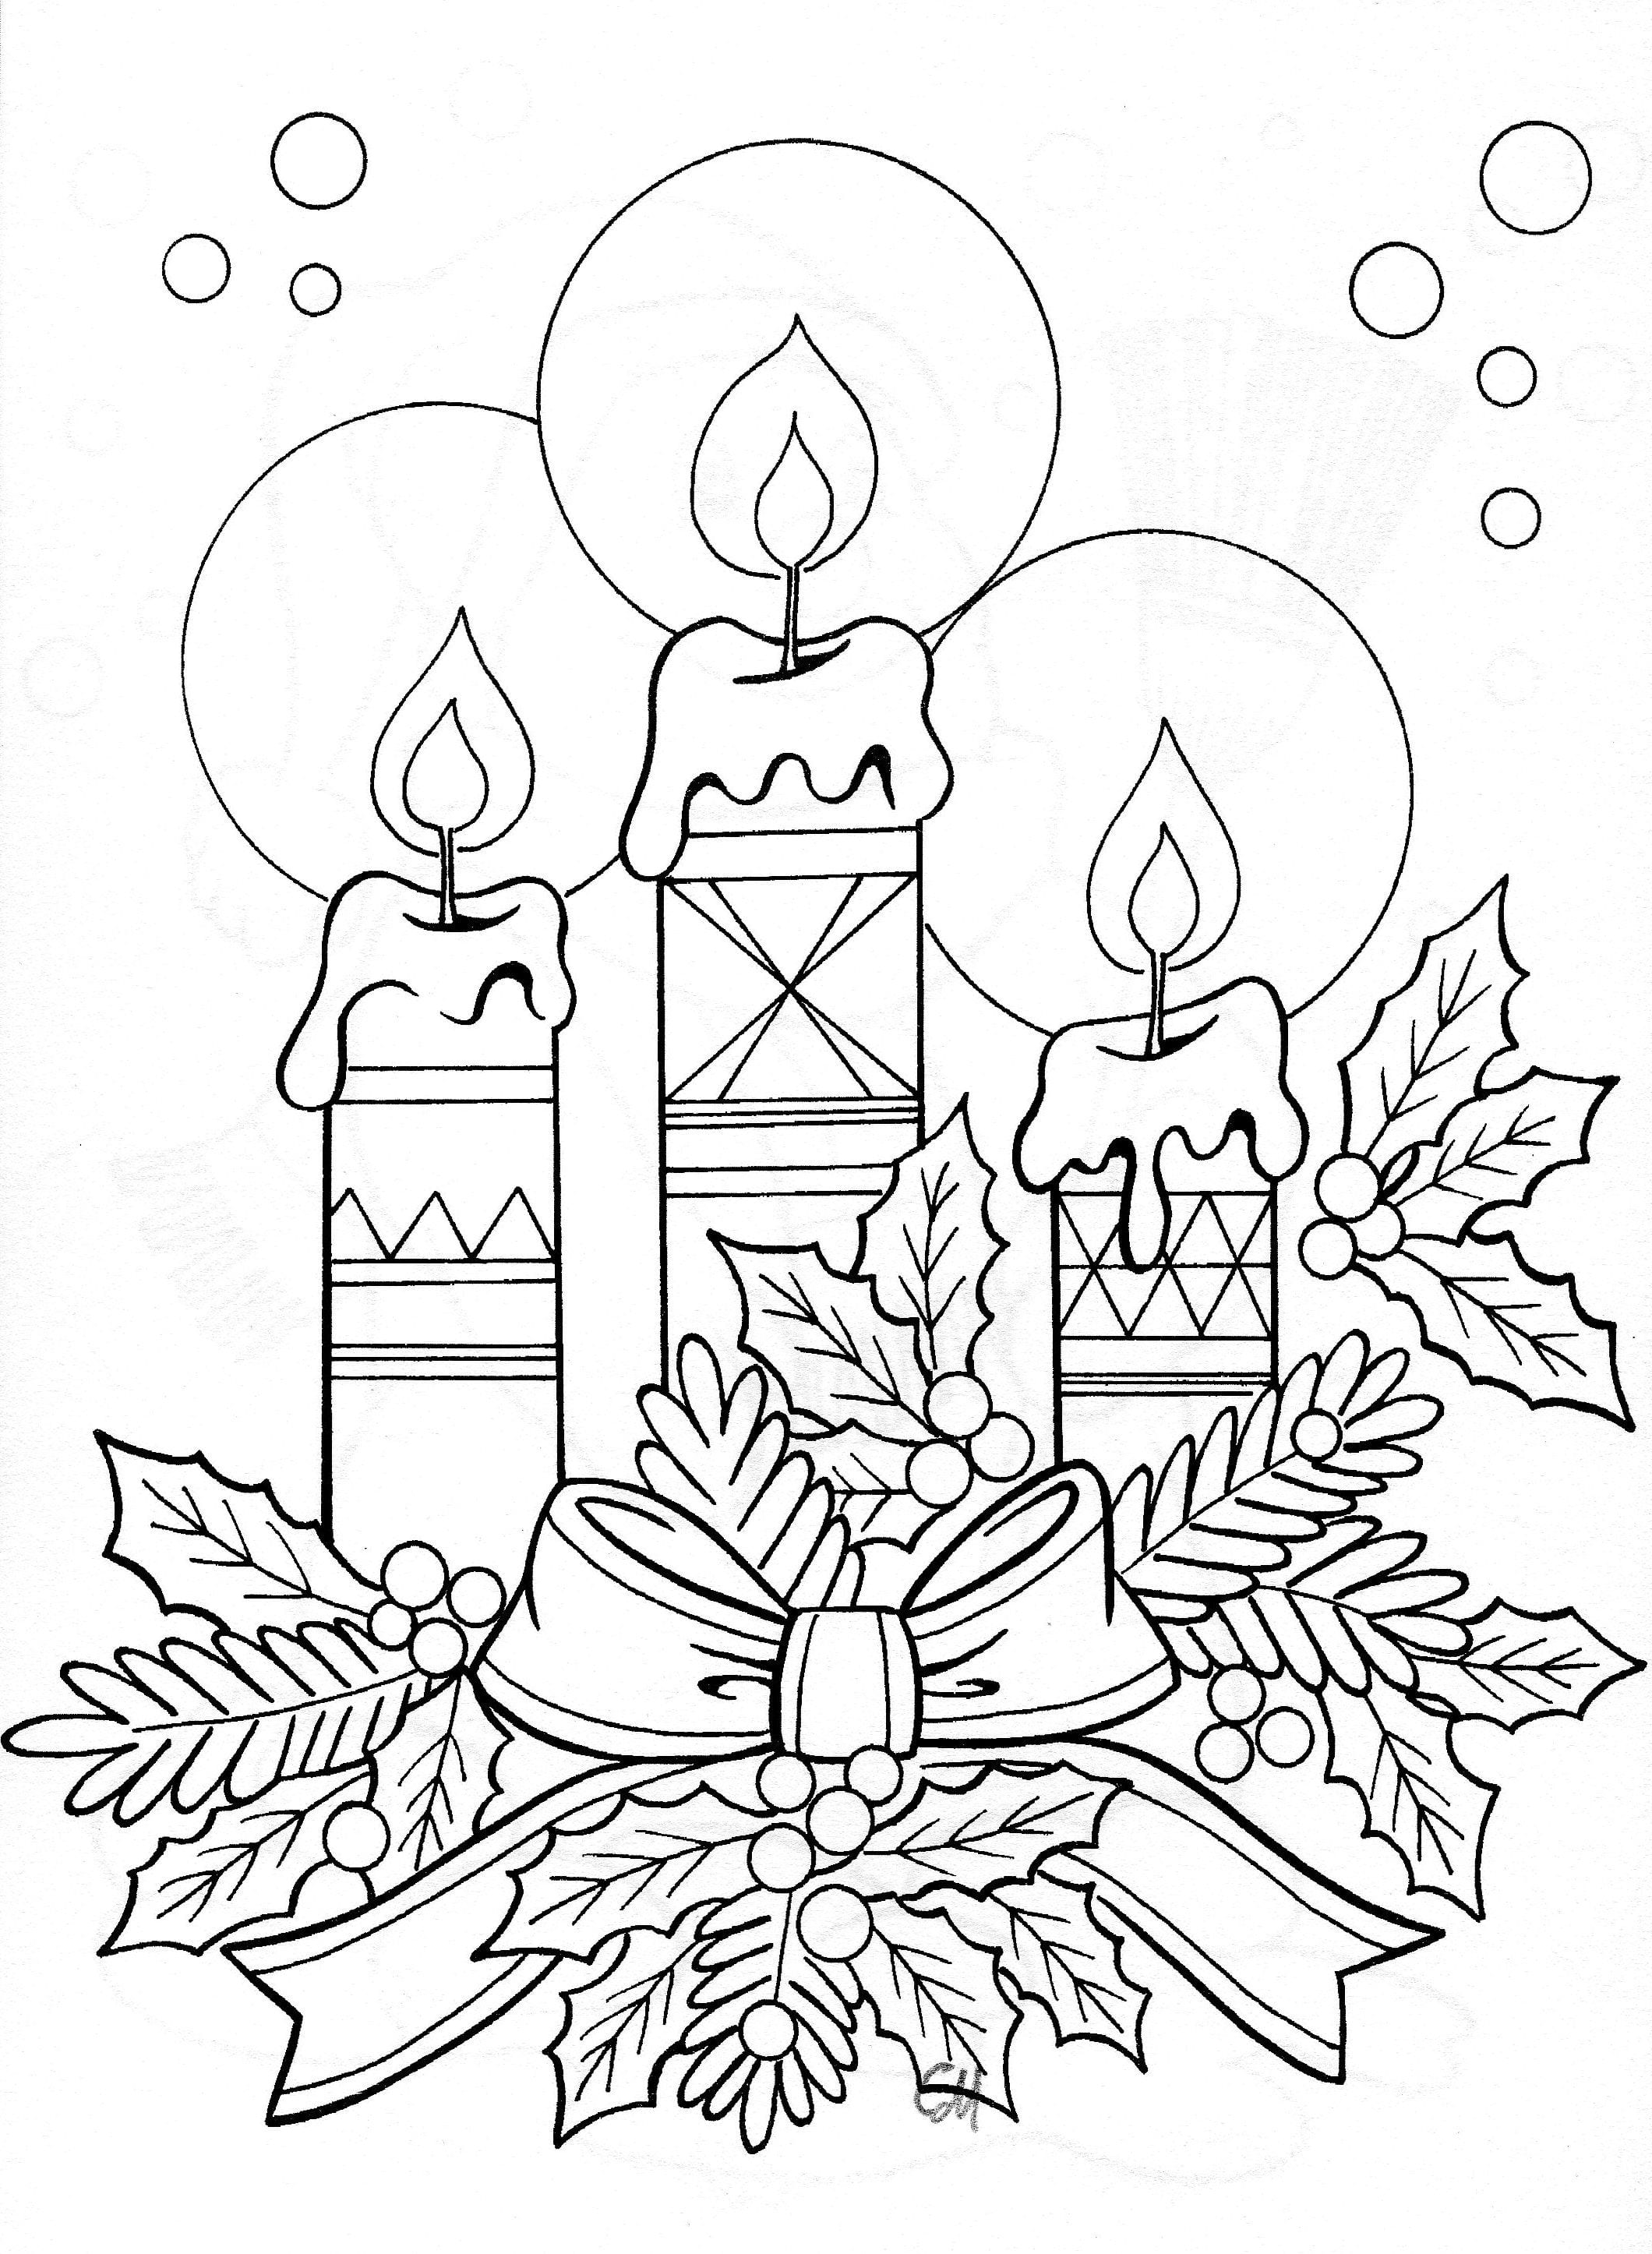 coloring pictures christmas 5 christmas coloring pages your kids will love coloring christmas pictures